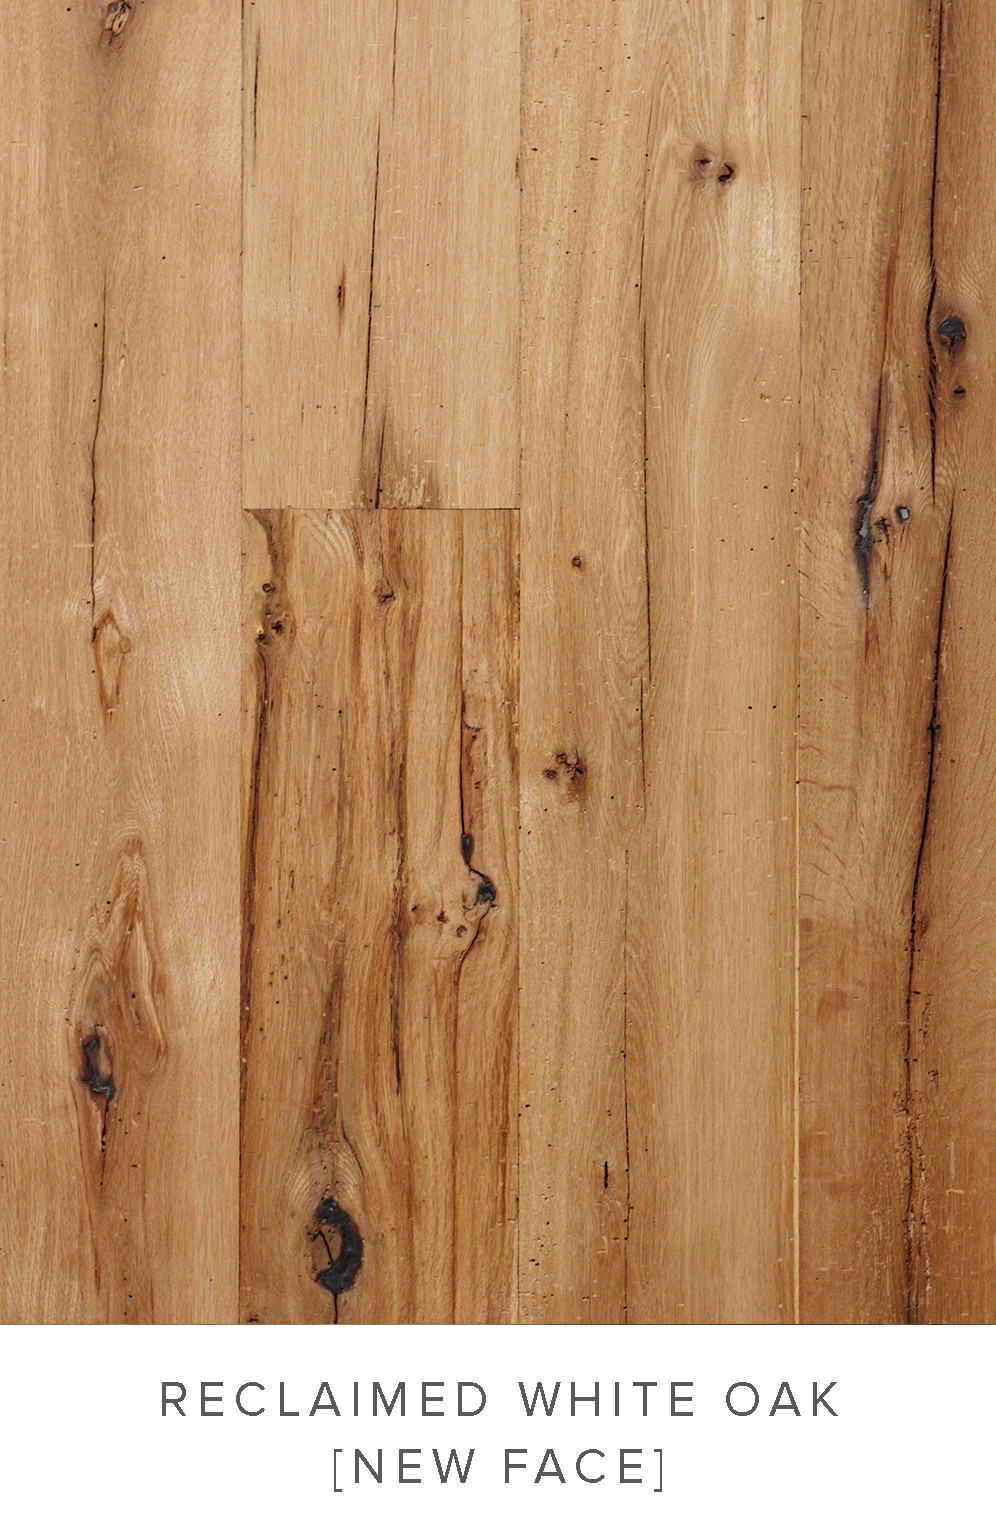 hardwood flooring stores in brooklyn ny of extensive range of reclaimed wood flooring all under one roof at the pertaining to reclaimed white oak new face